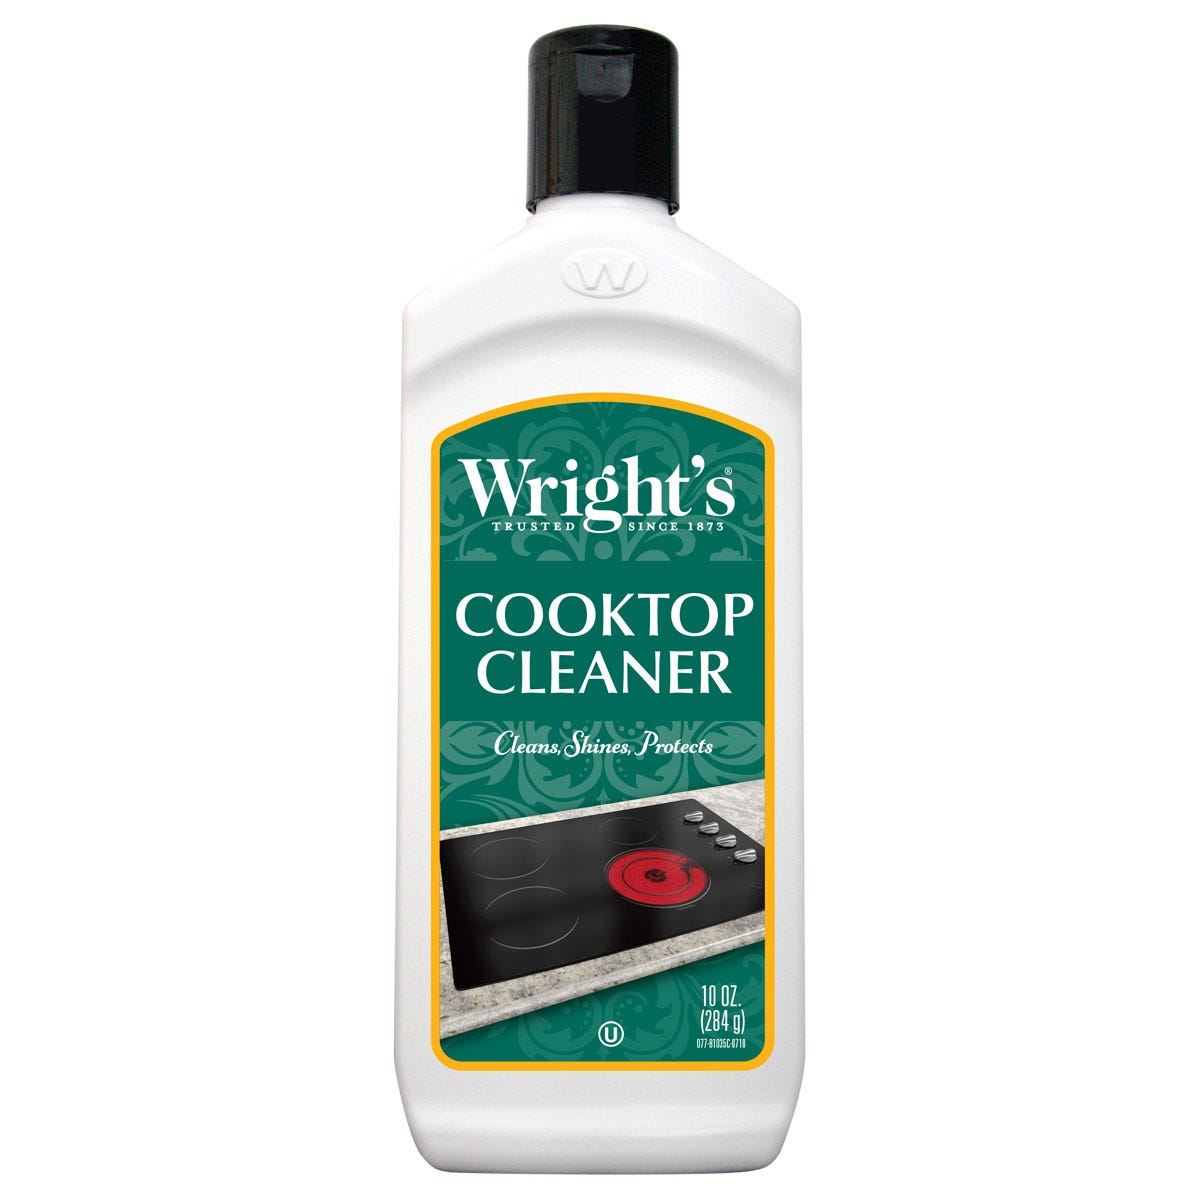 Wright's Cooktop Cleaner